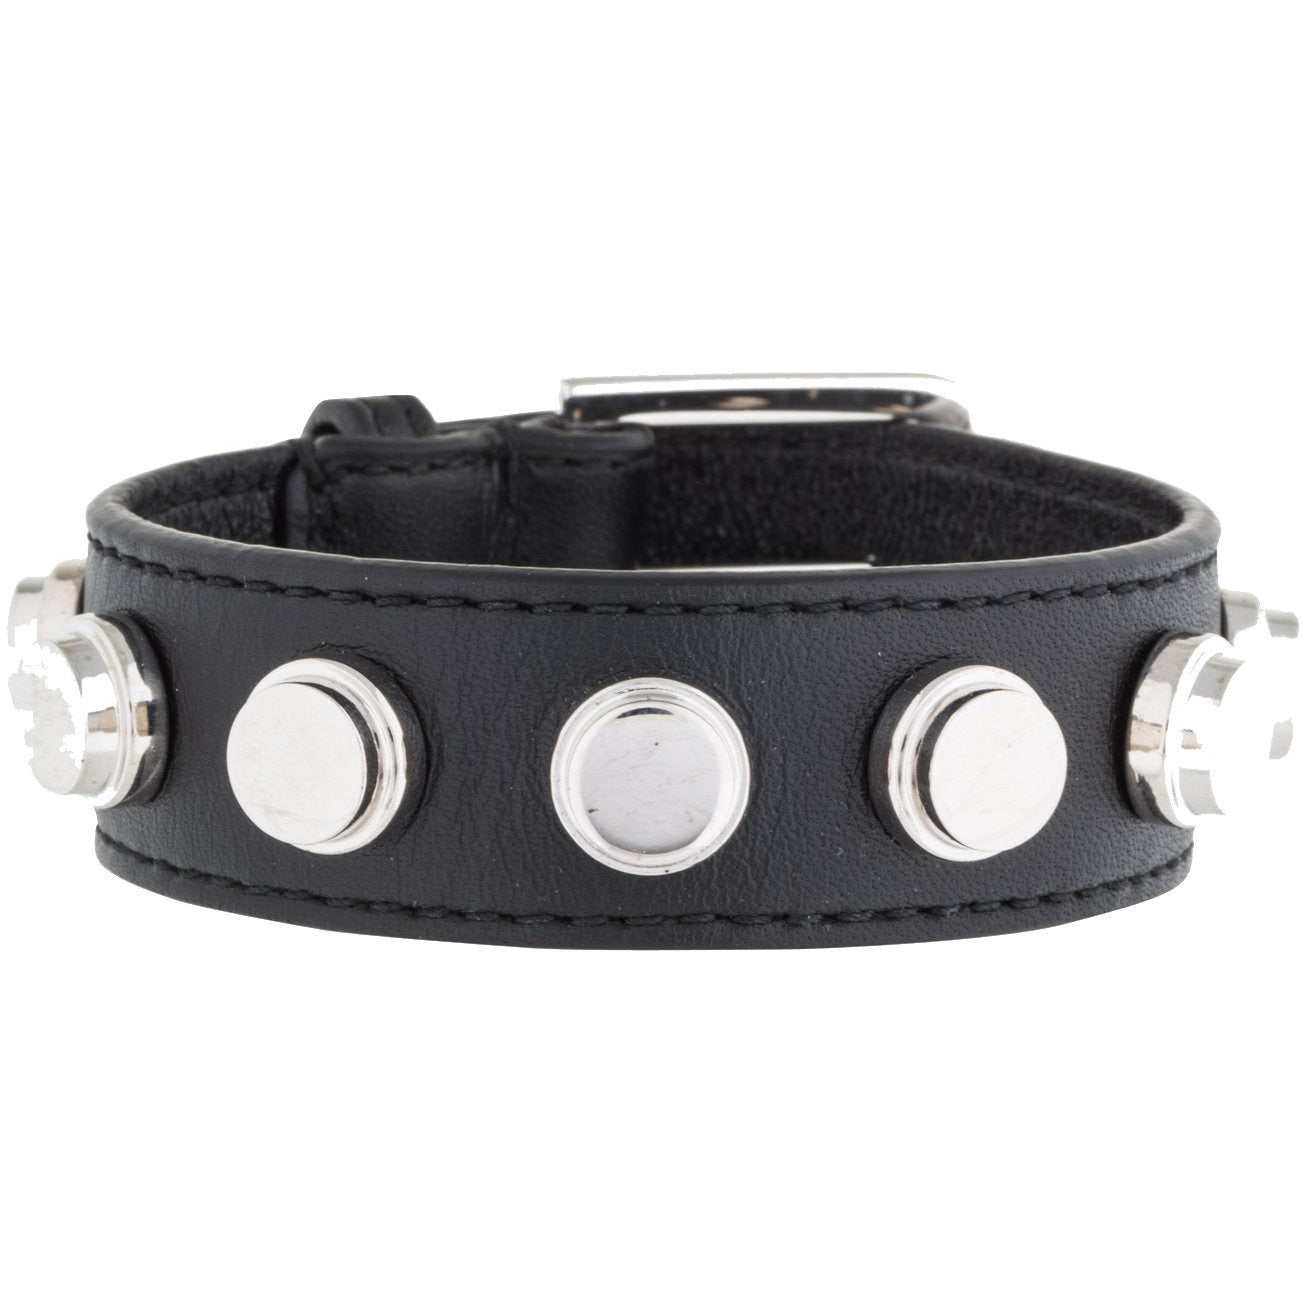 Saint Laurent YSL Women's Black Leather Silver Studded Luxury Bracelet 397407